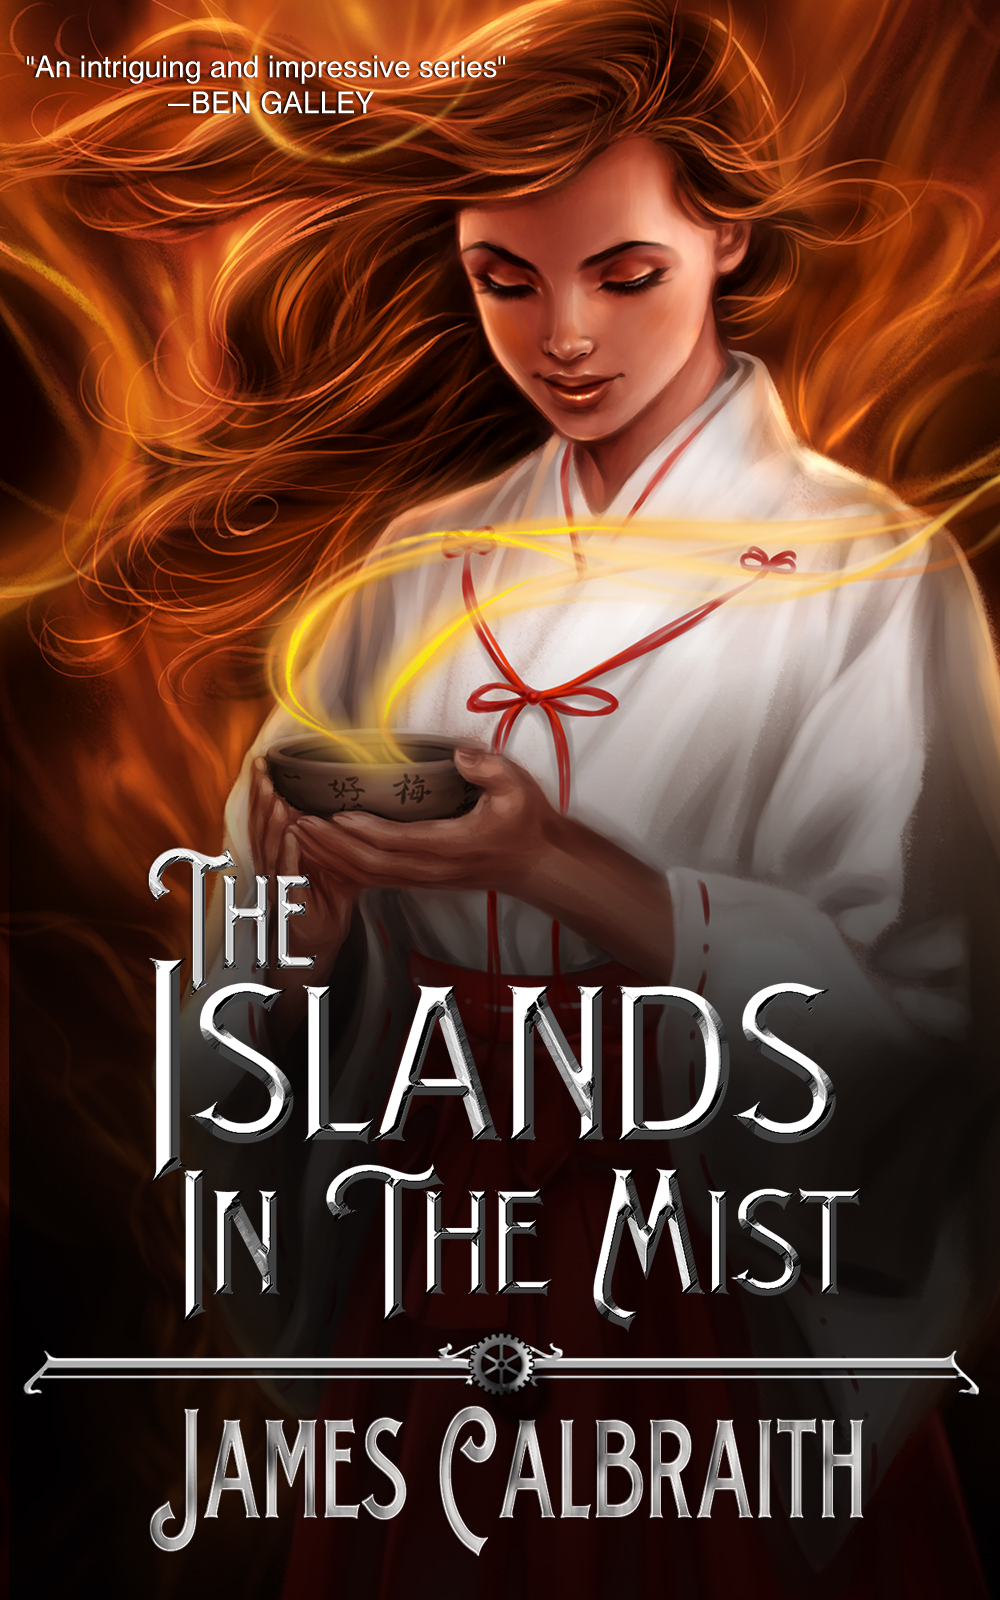 The Islands in the Mist By: James Calbraith